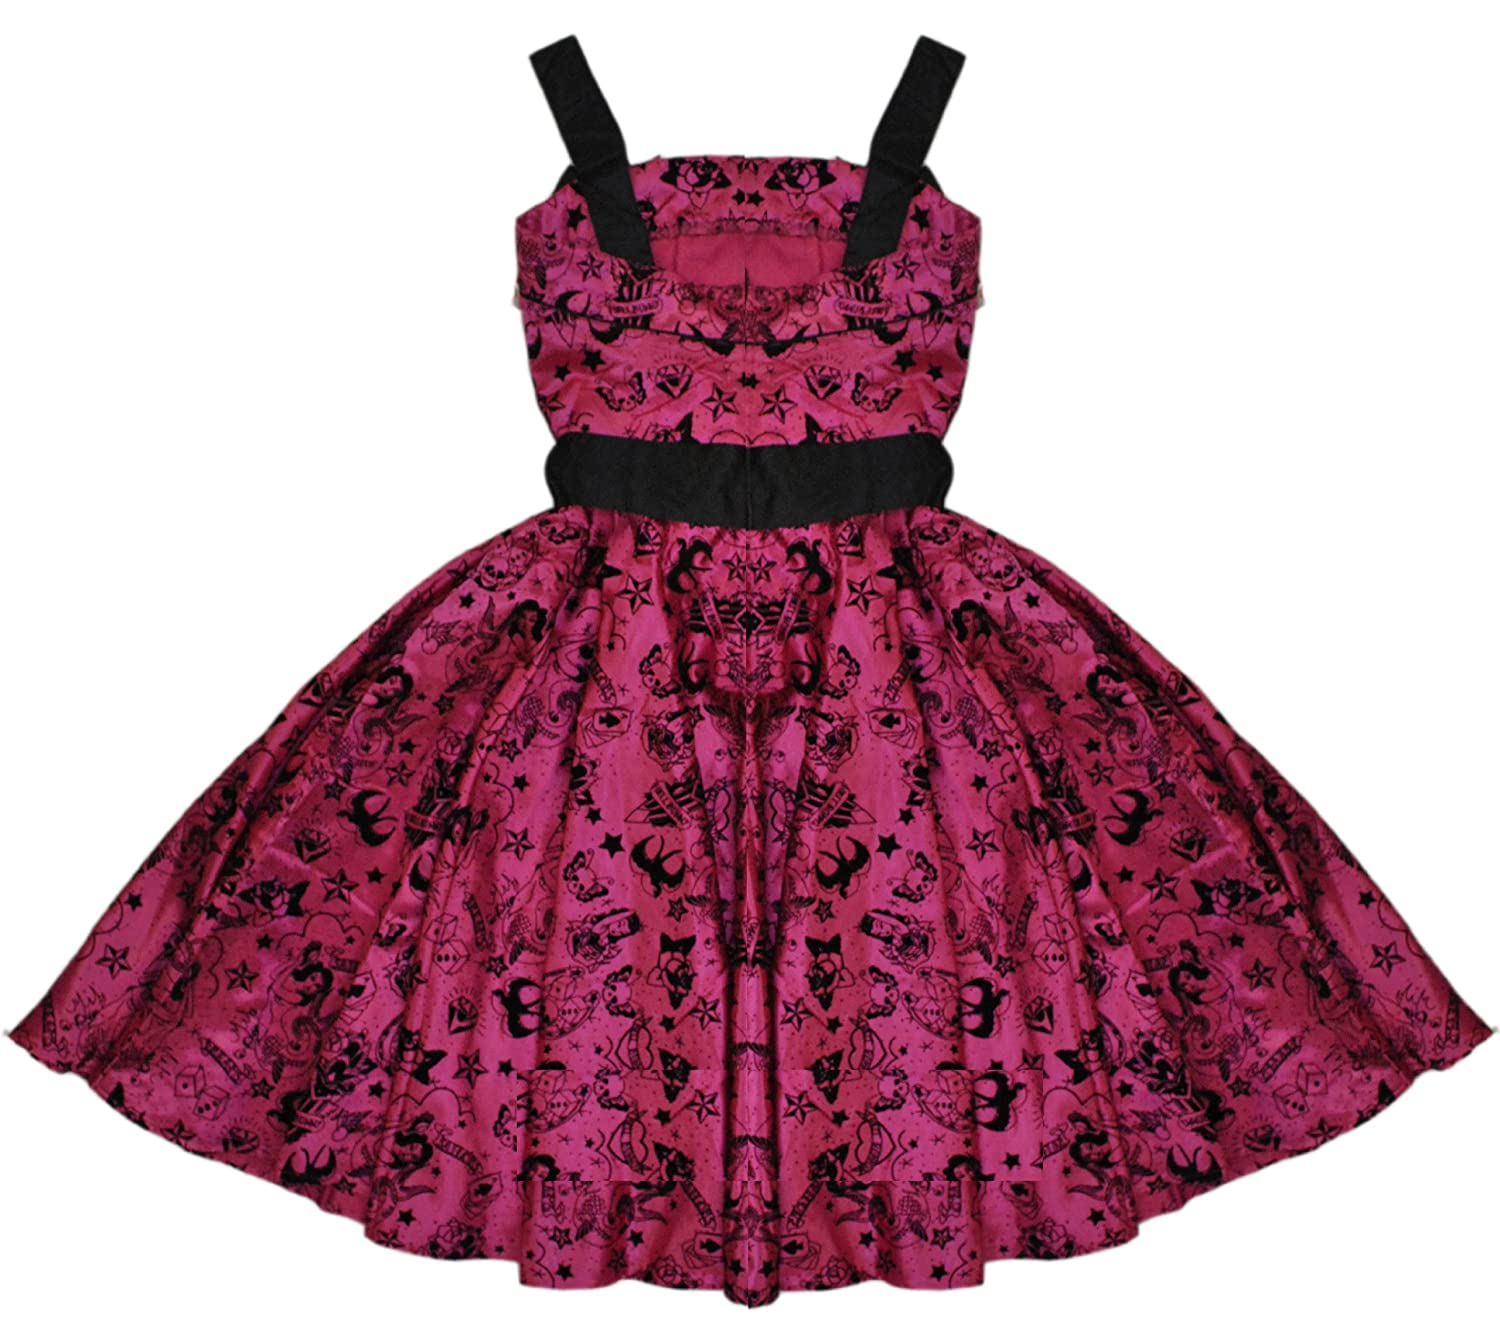 76dfd58669 Hell Bunny Tattoo Flocked Emo Vintage Women's Pink Party Prom Dress X-Small  UK 8: Amazon.co.uk: Clothing